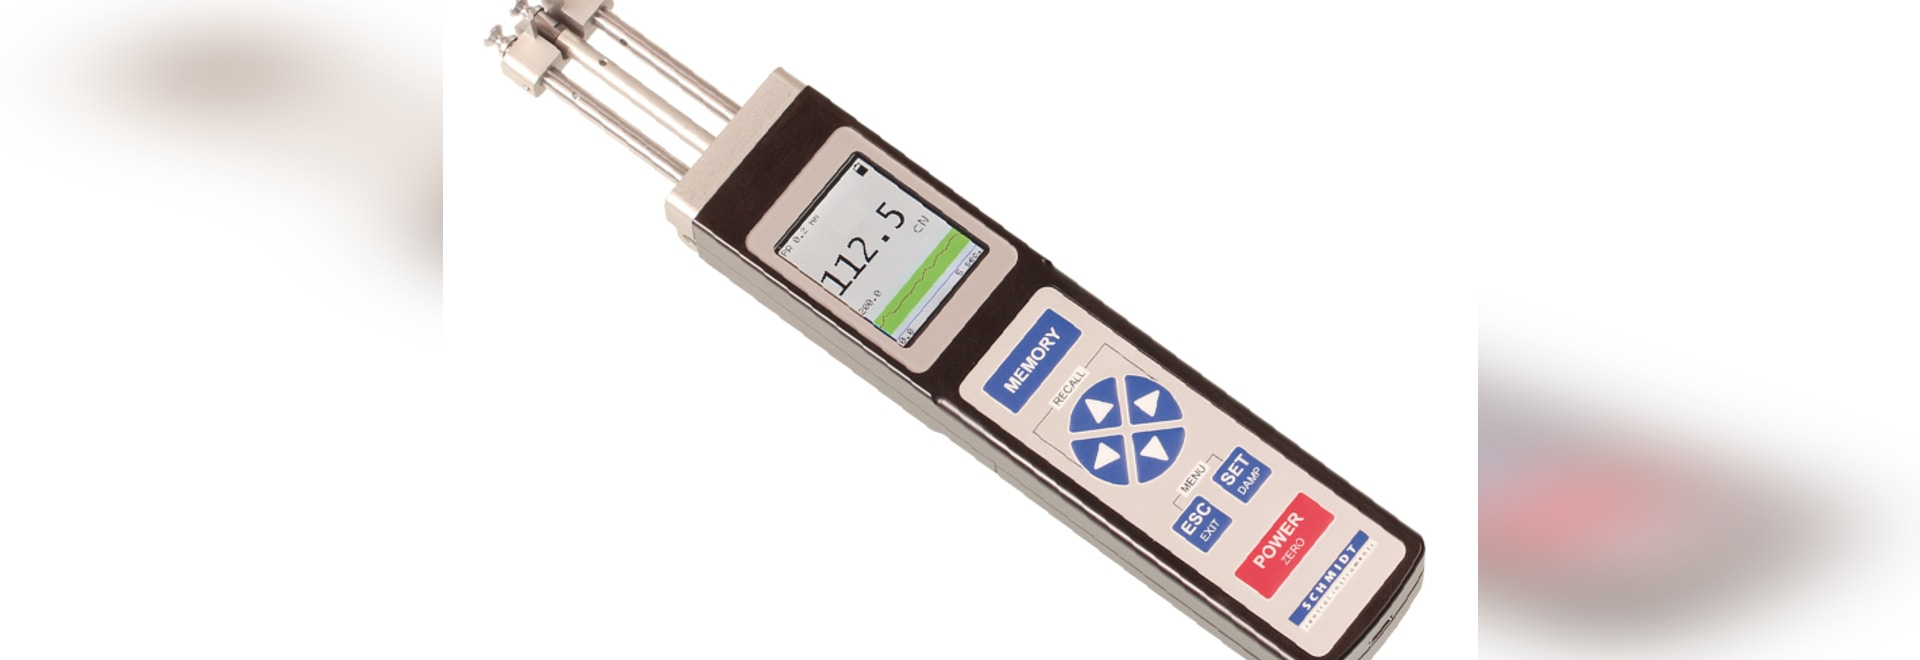 Tension Meter ETX with graphic display